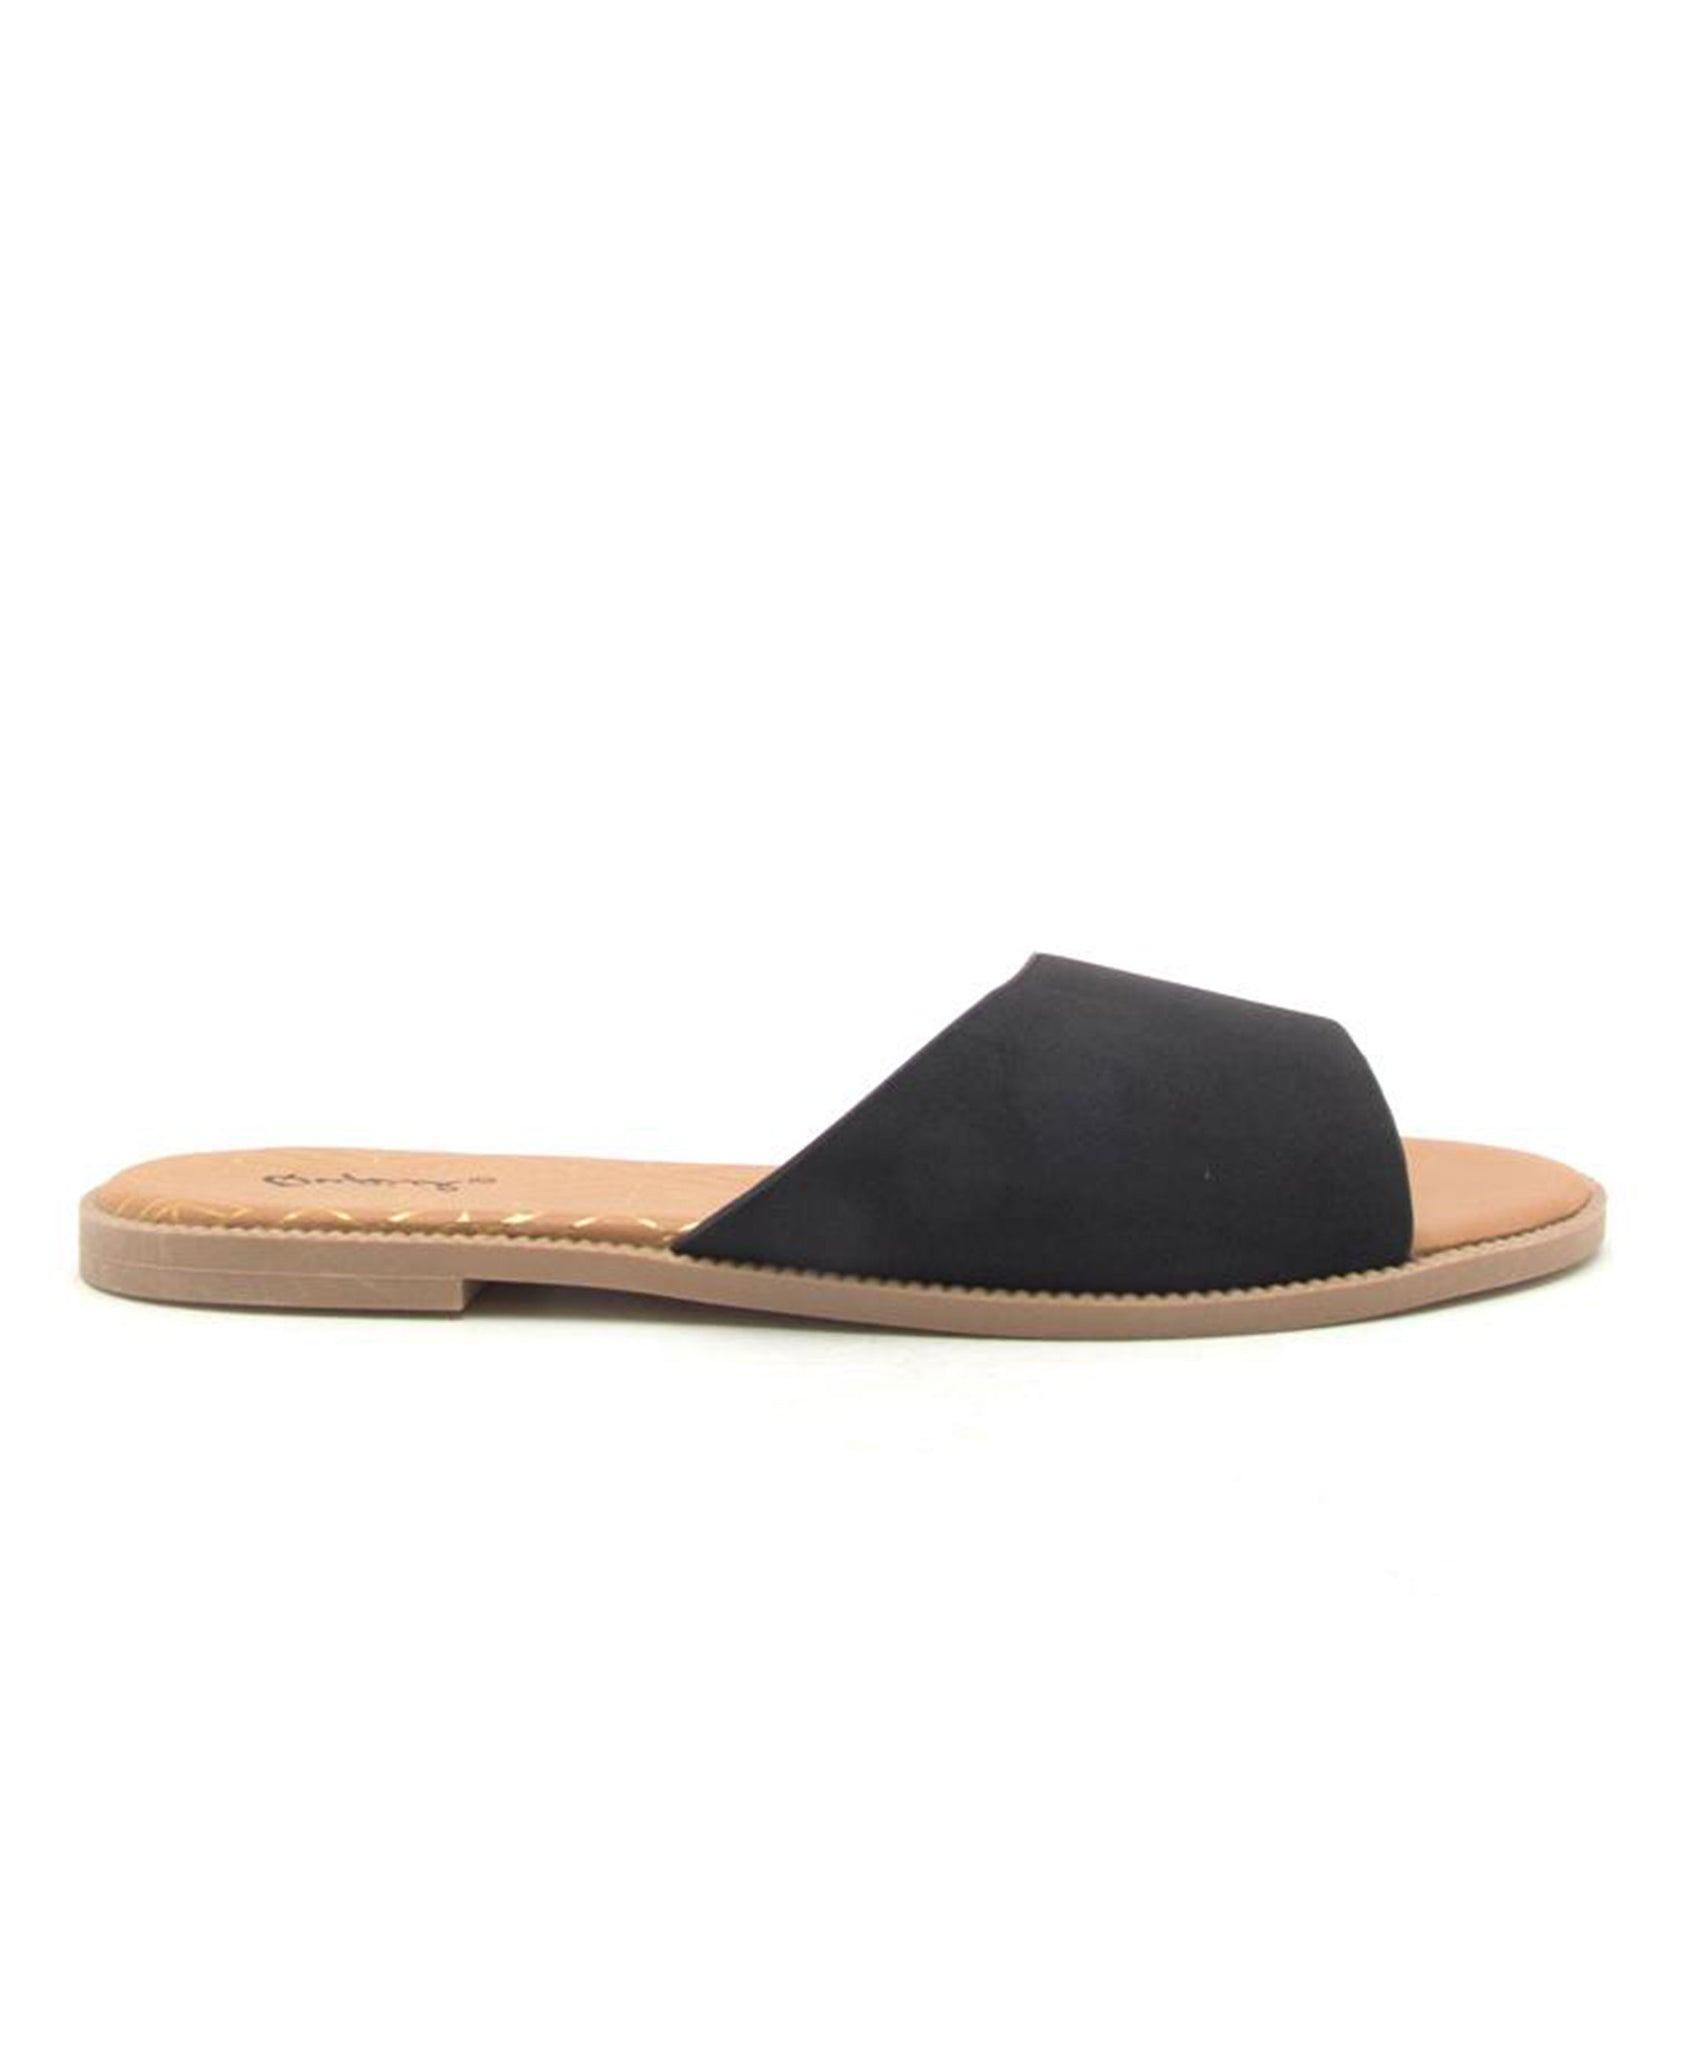 Desmond One Band Sandal - Black